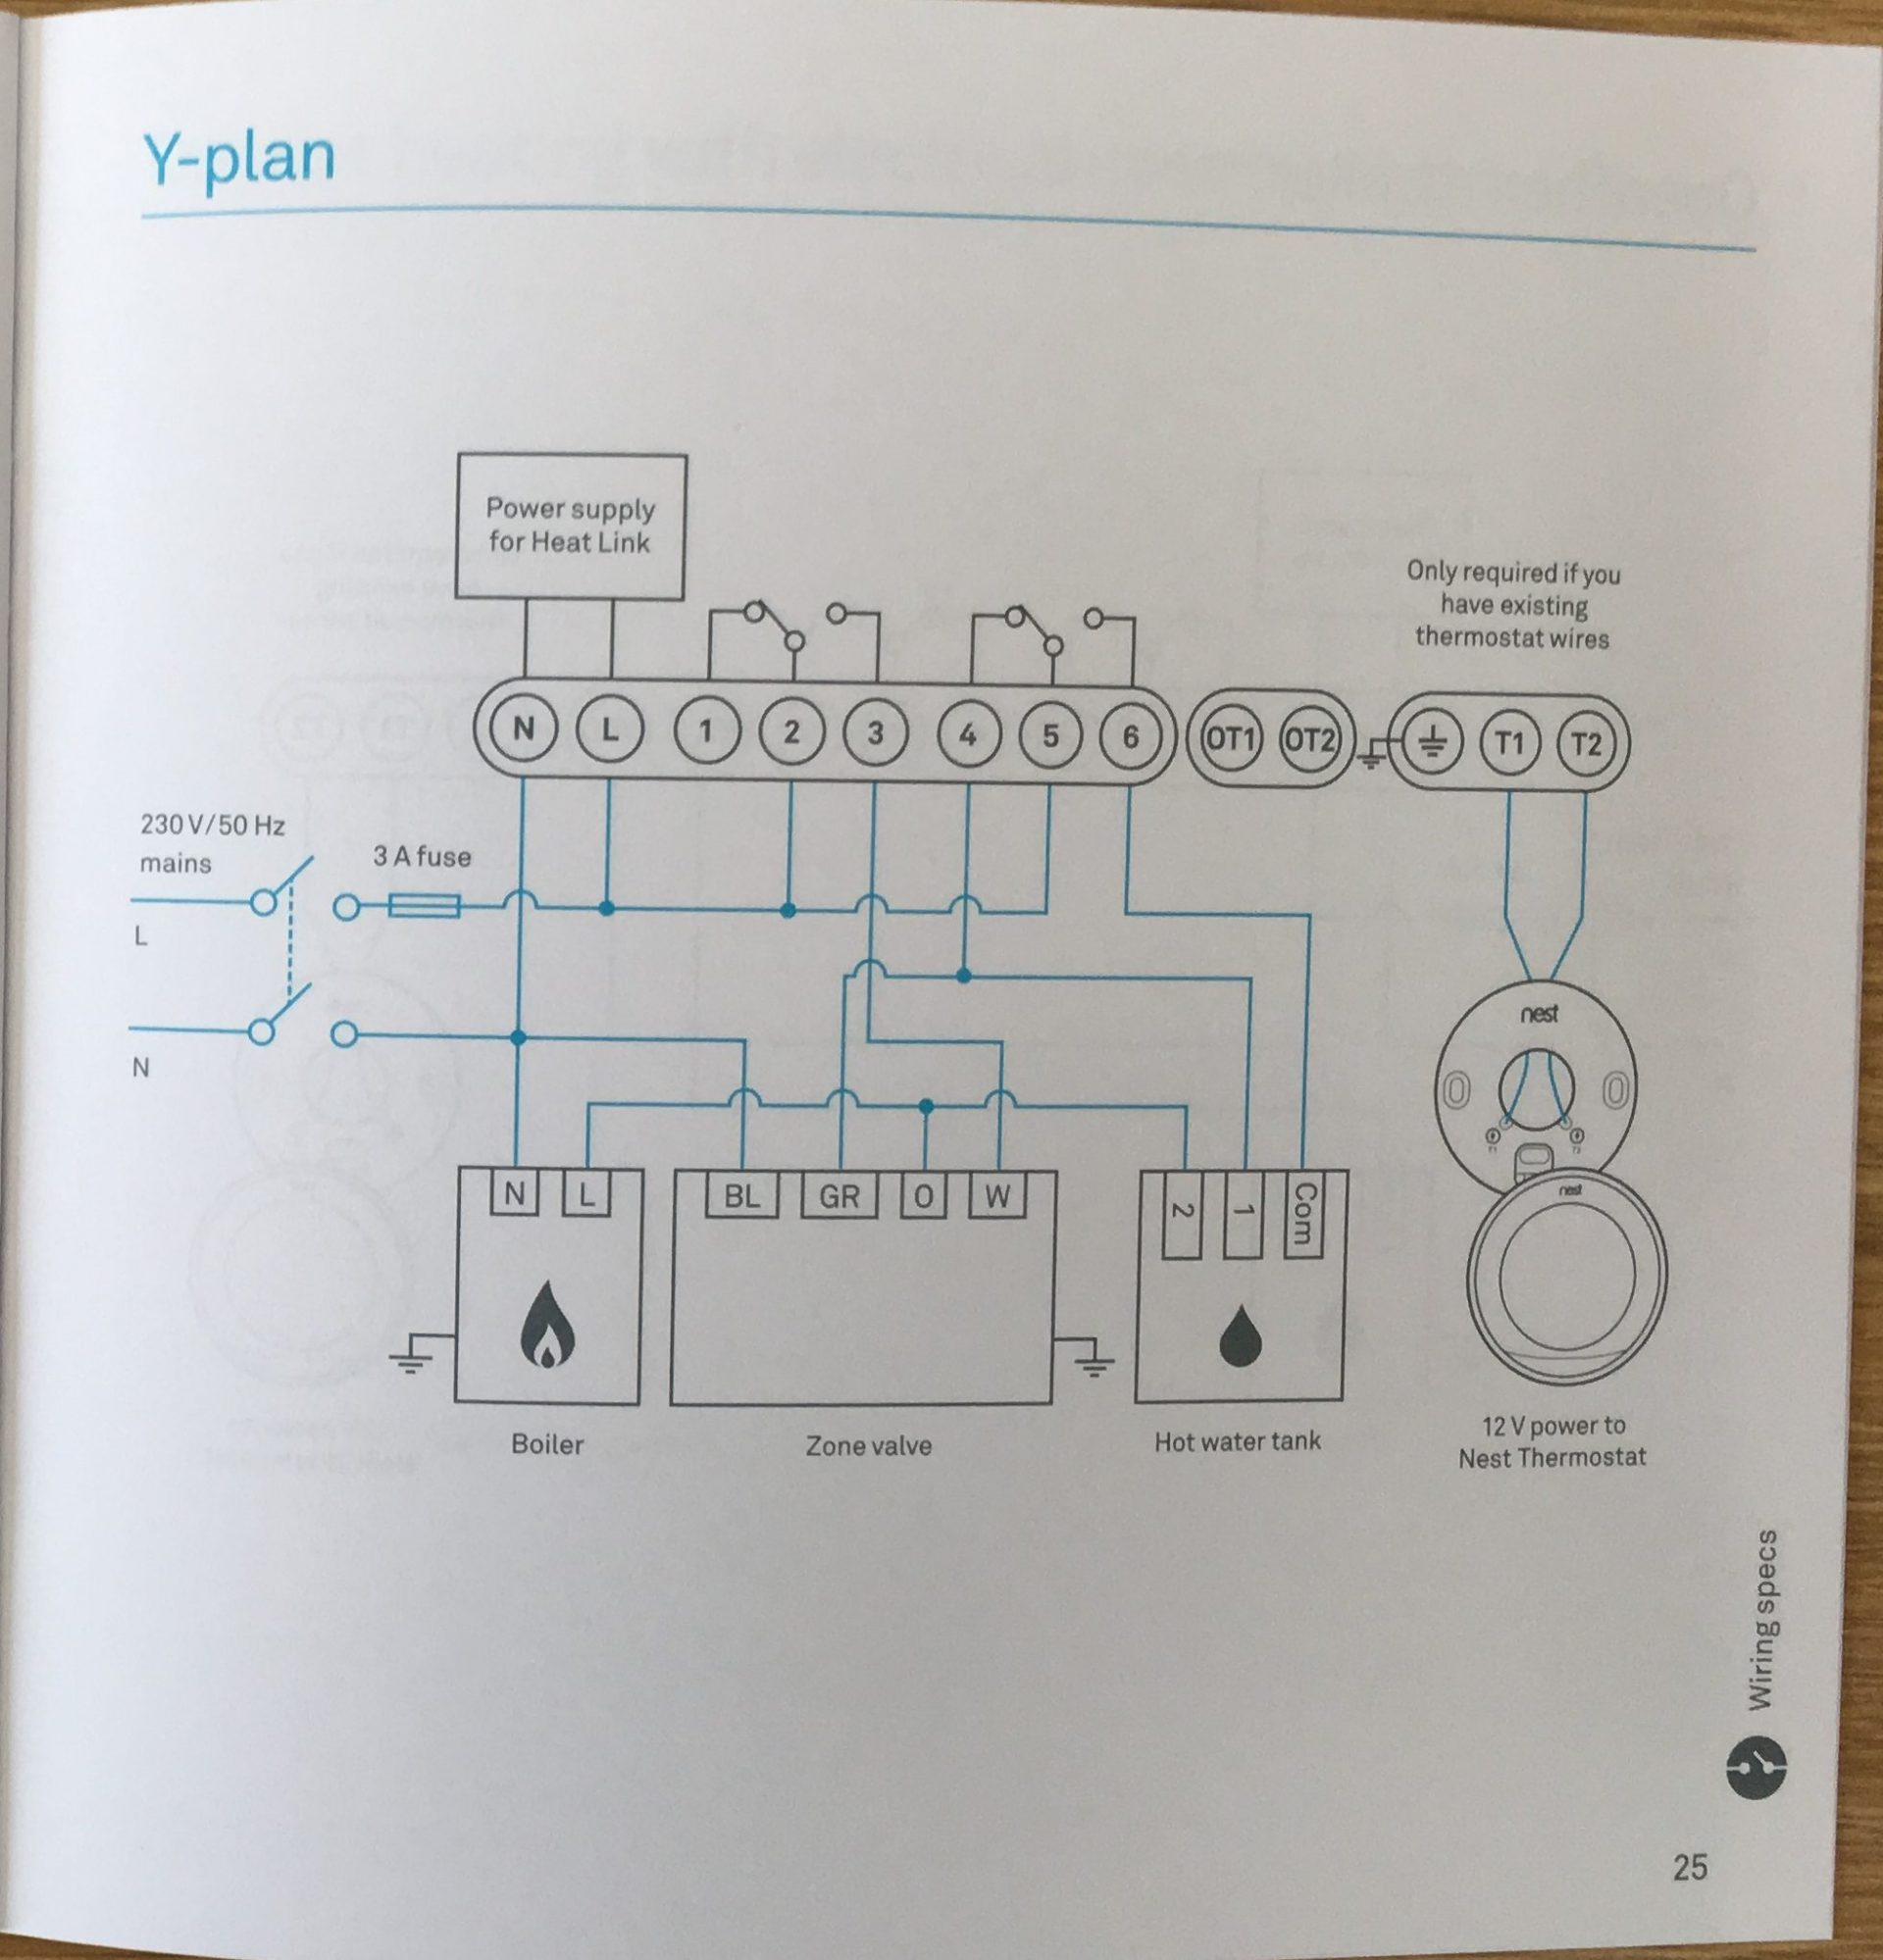 water furnace thermostat wiring diagram br 3291  diagram also nest thermostat wiring diagram on 7 wire  nest thermostat wiring diagram